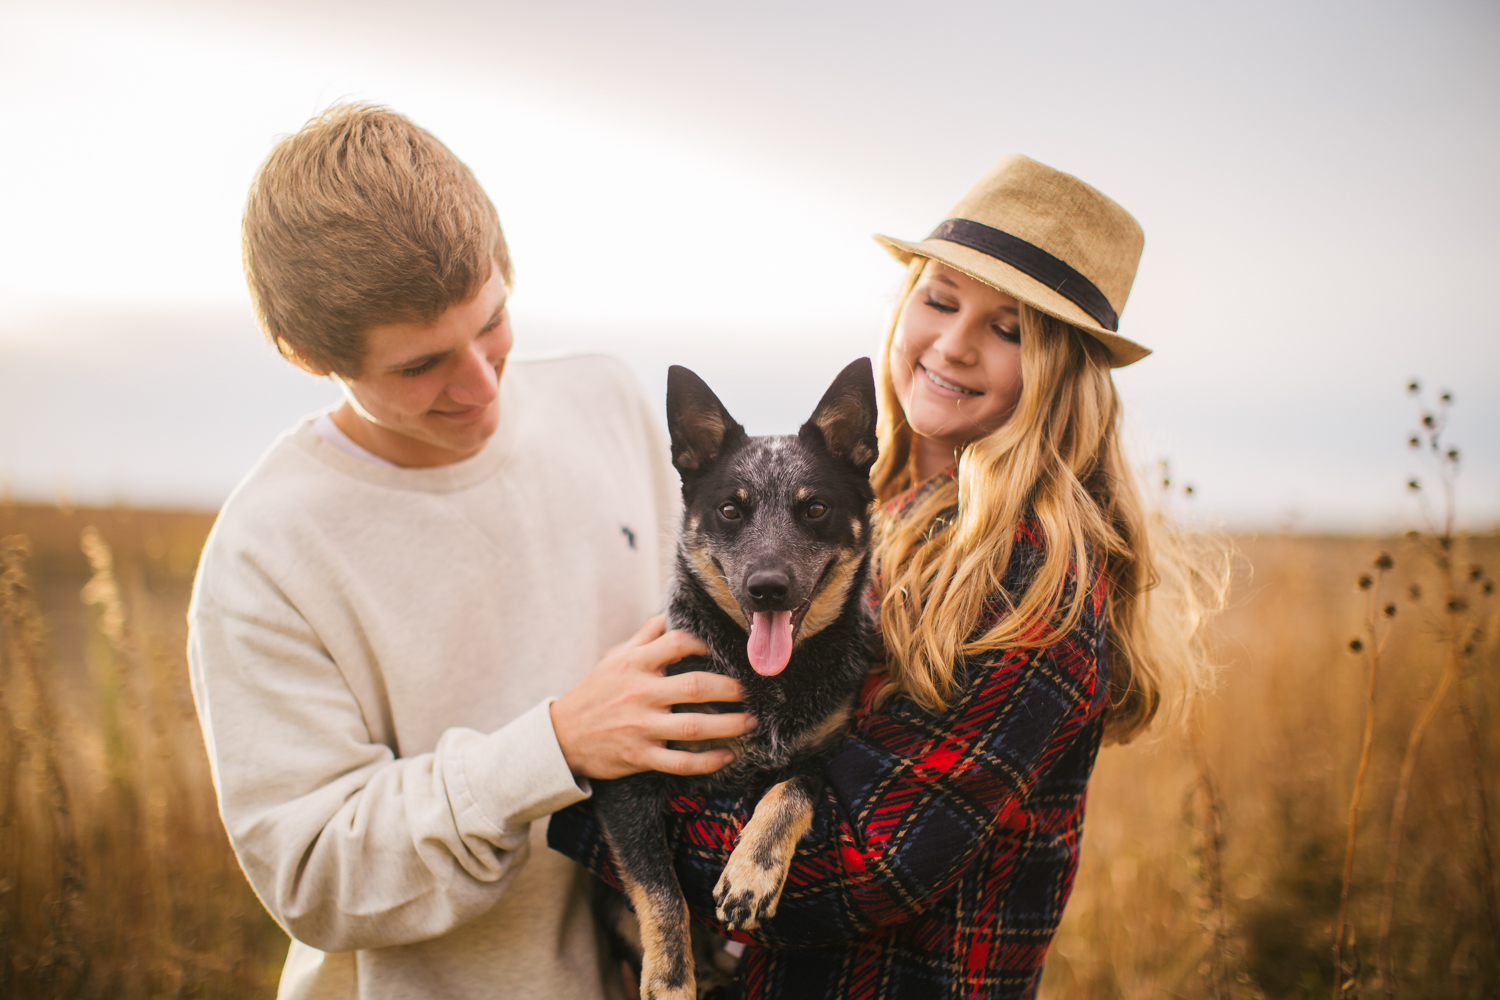 Affordable-Engagement-Photography-Fort-Collins-Colorado_005.jpg